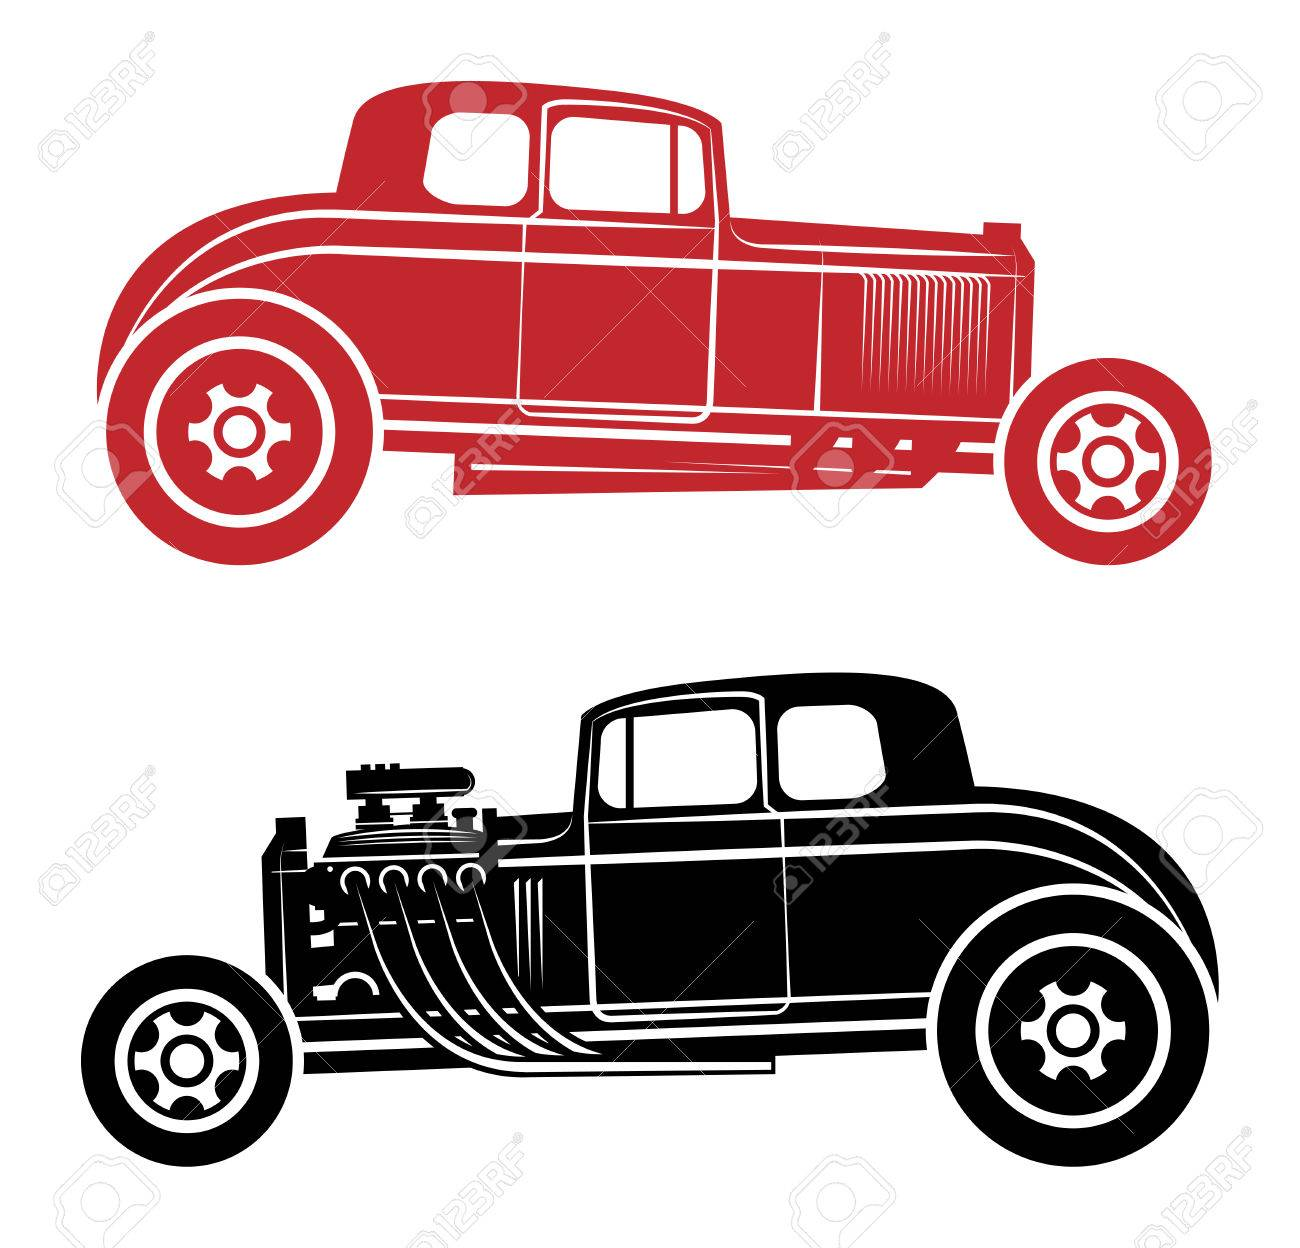 Hot Rod Vector Illustration Royalty Free Cliparts Vectors And Stock Illustration Image 37185863